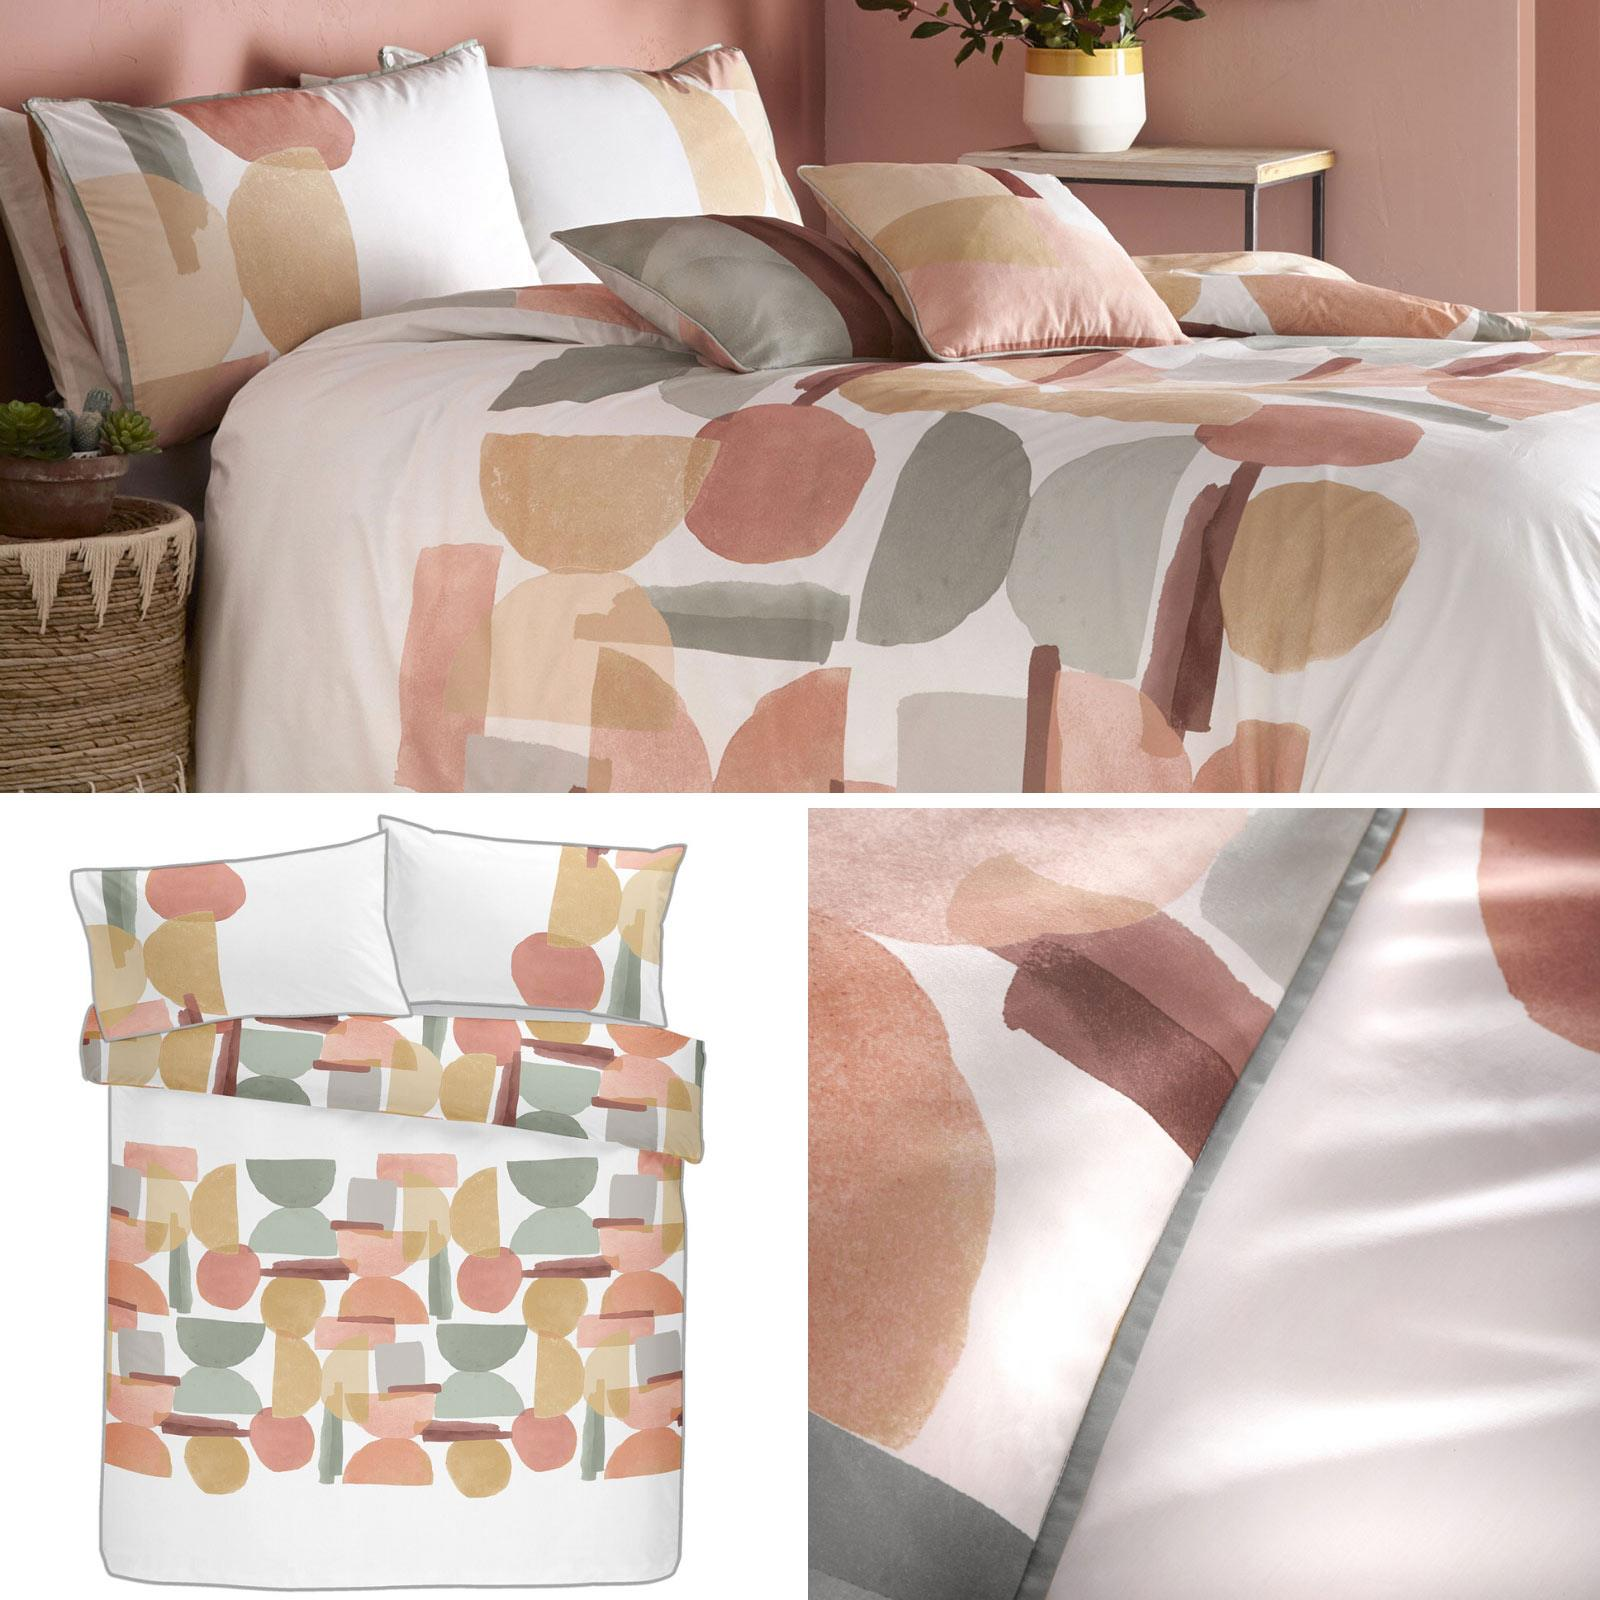 White Duvet Covers Coral Abstract 100 Cotton Luxury Quilt Cover Bedding Sets Ebay